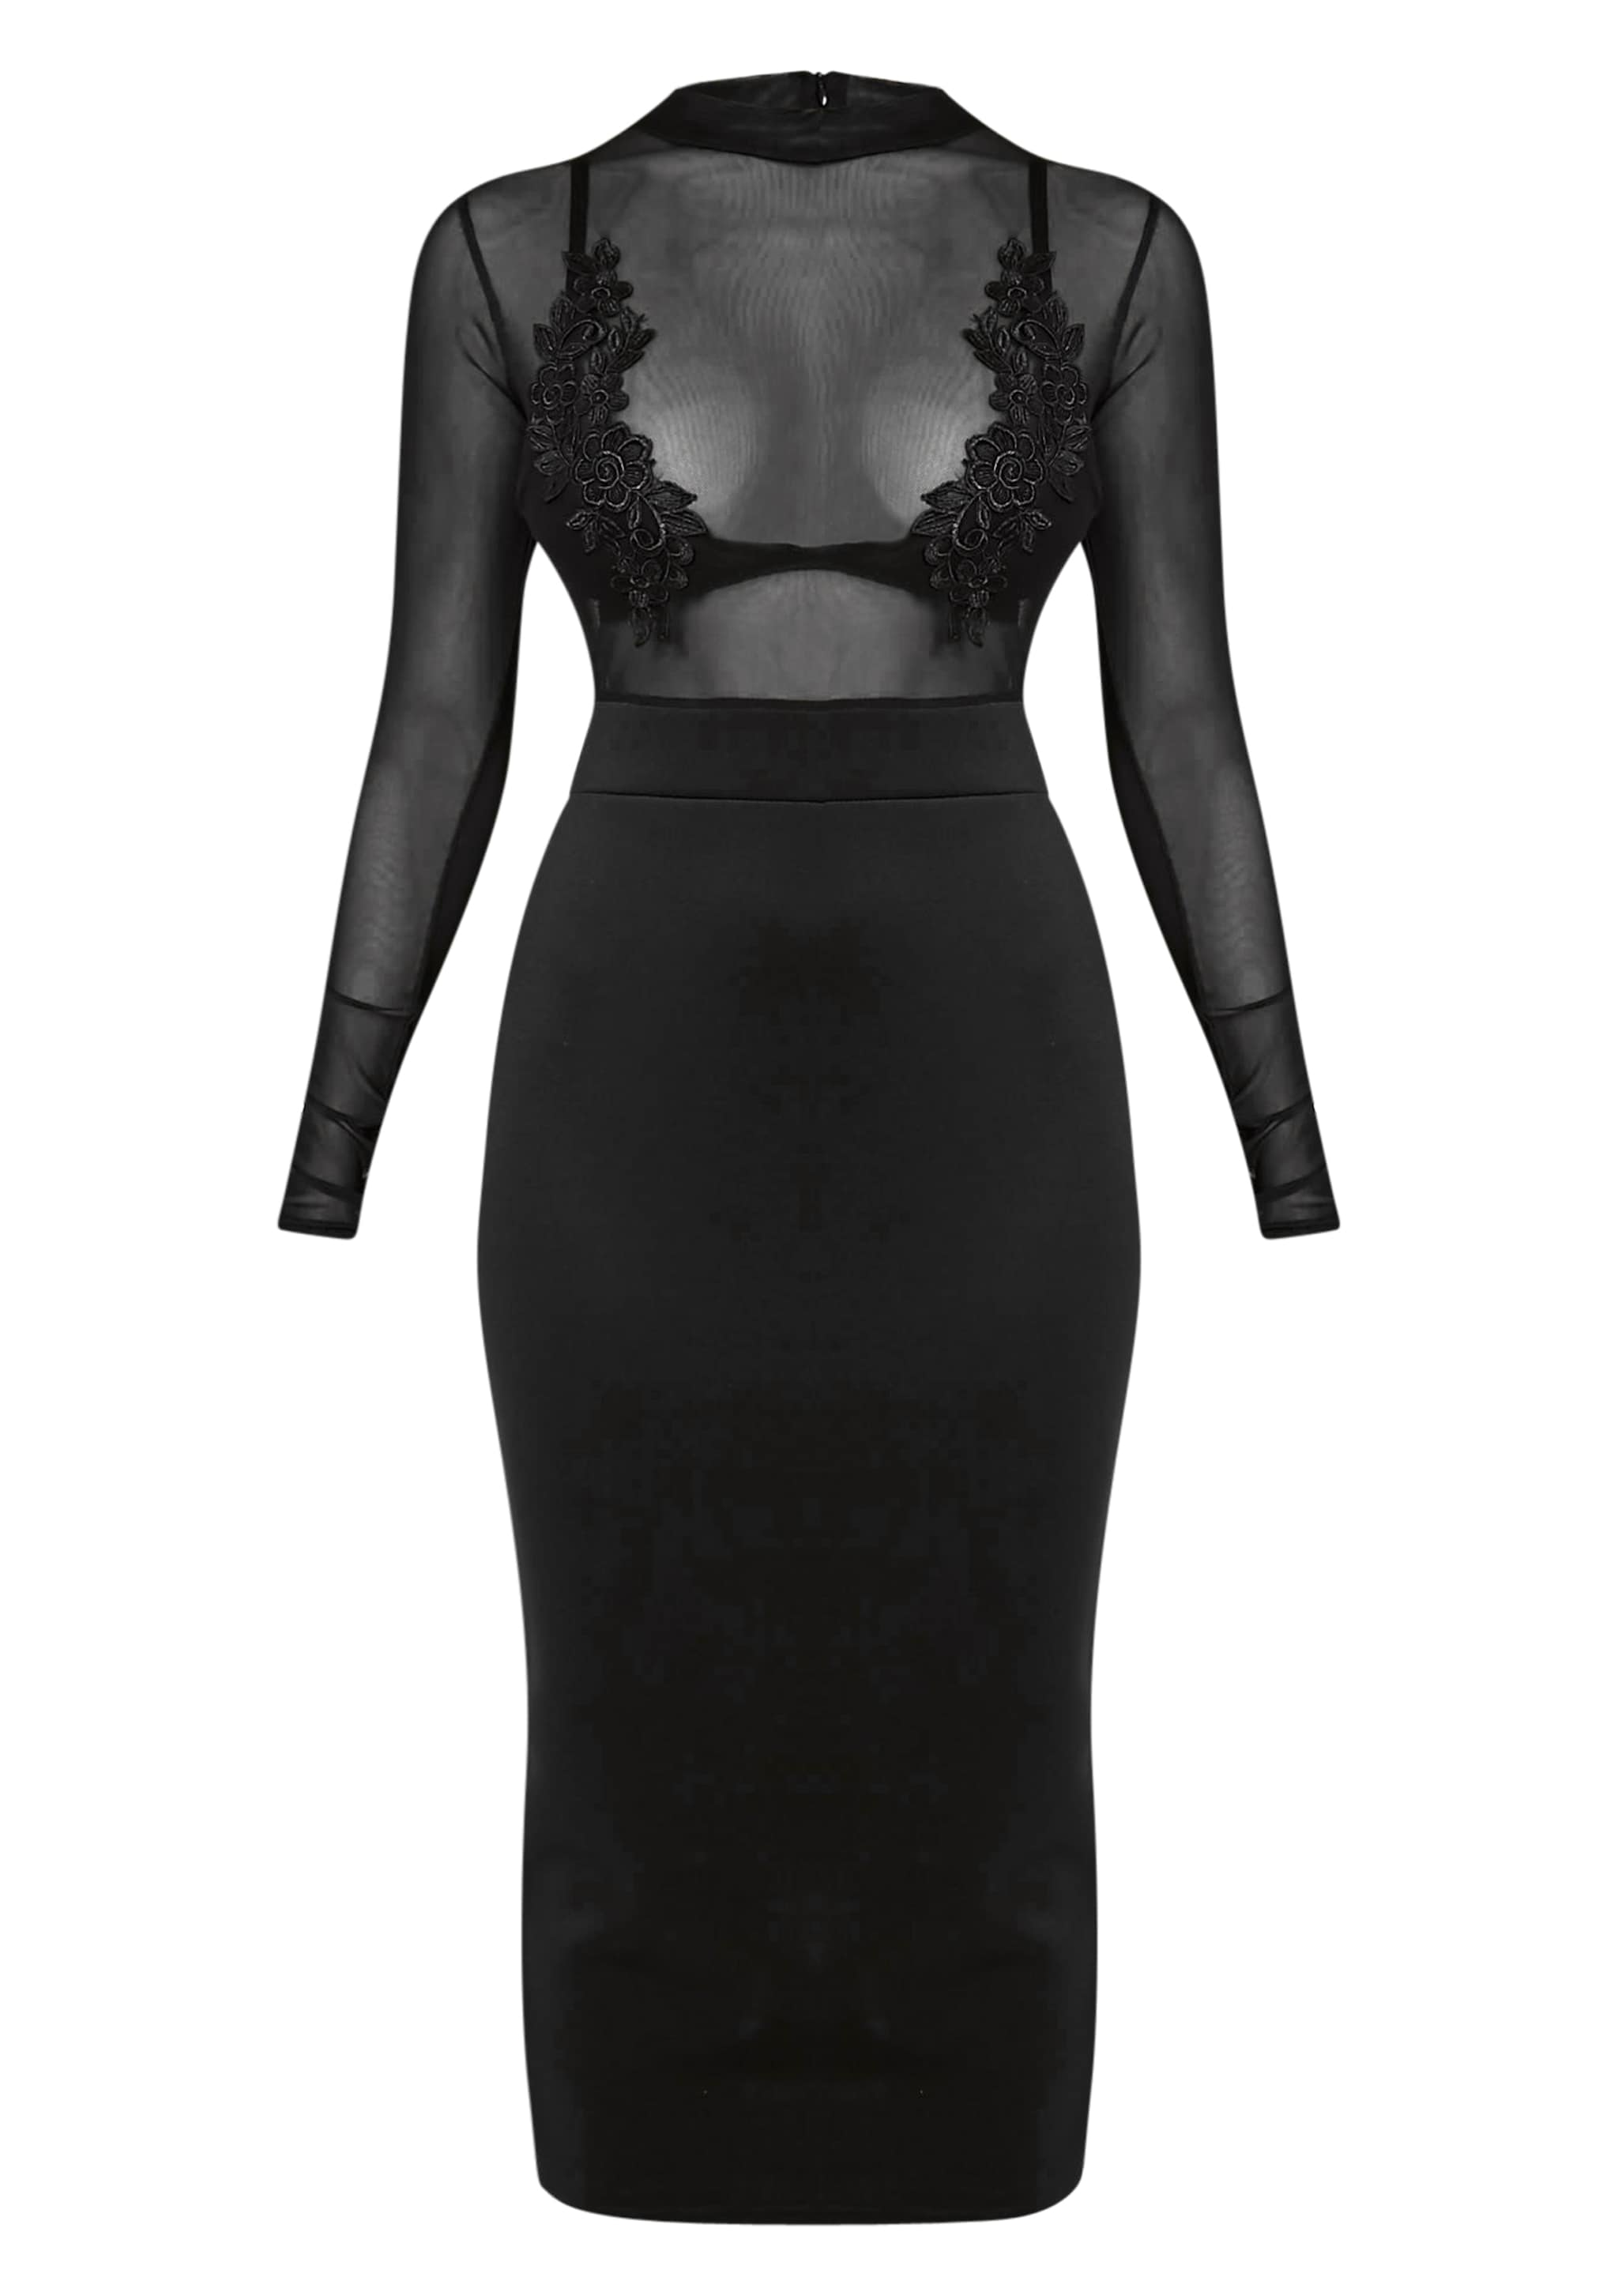 Fabia Black High Neck Applique Mesh Midi Dress 3